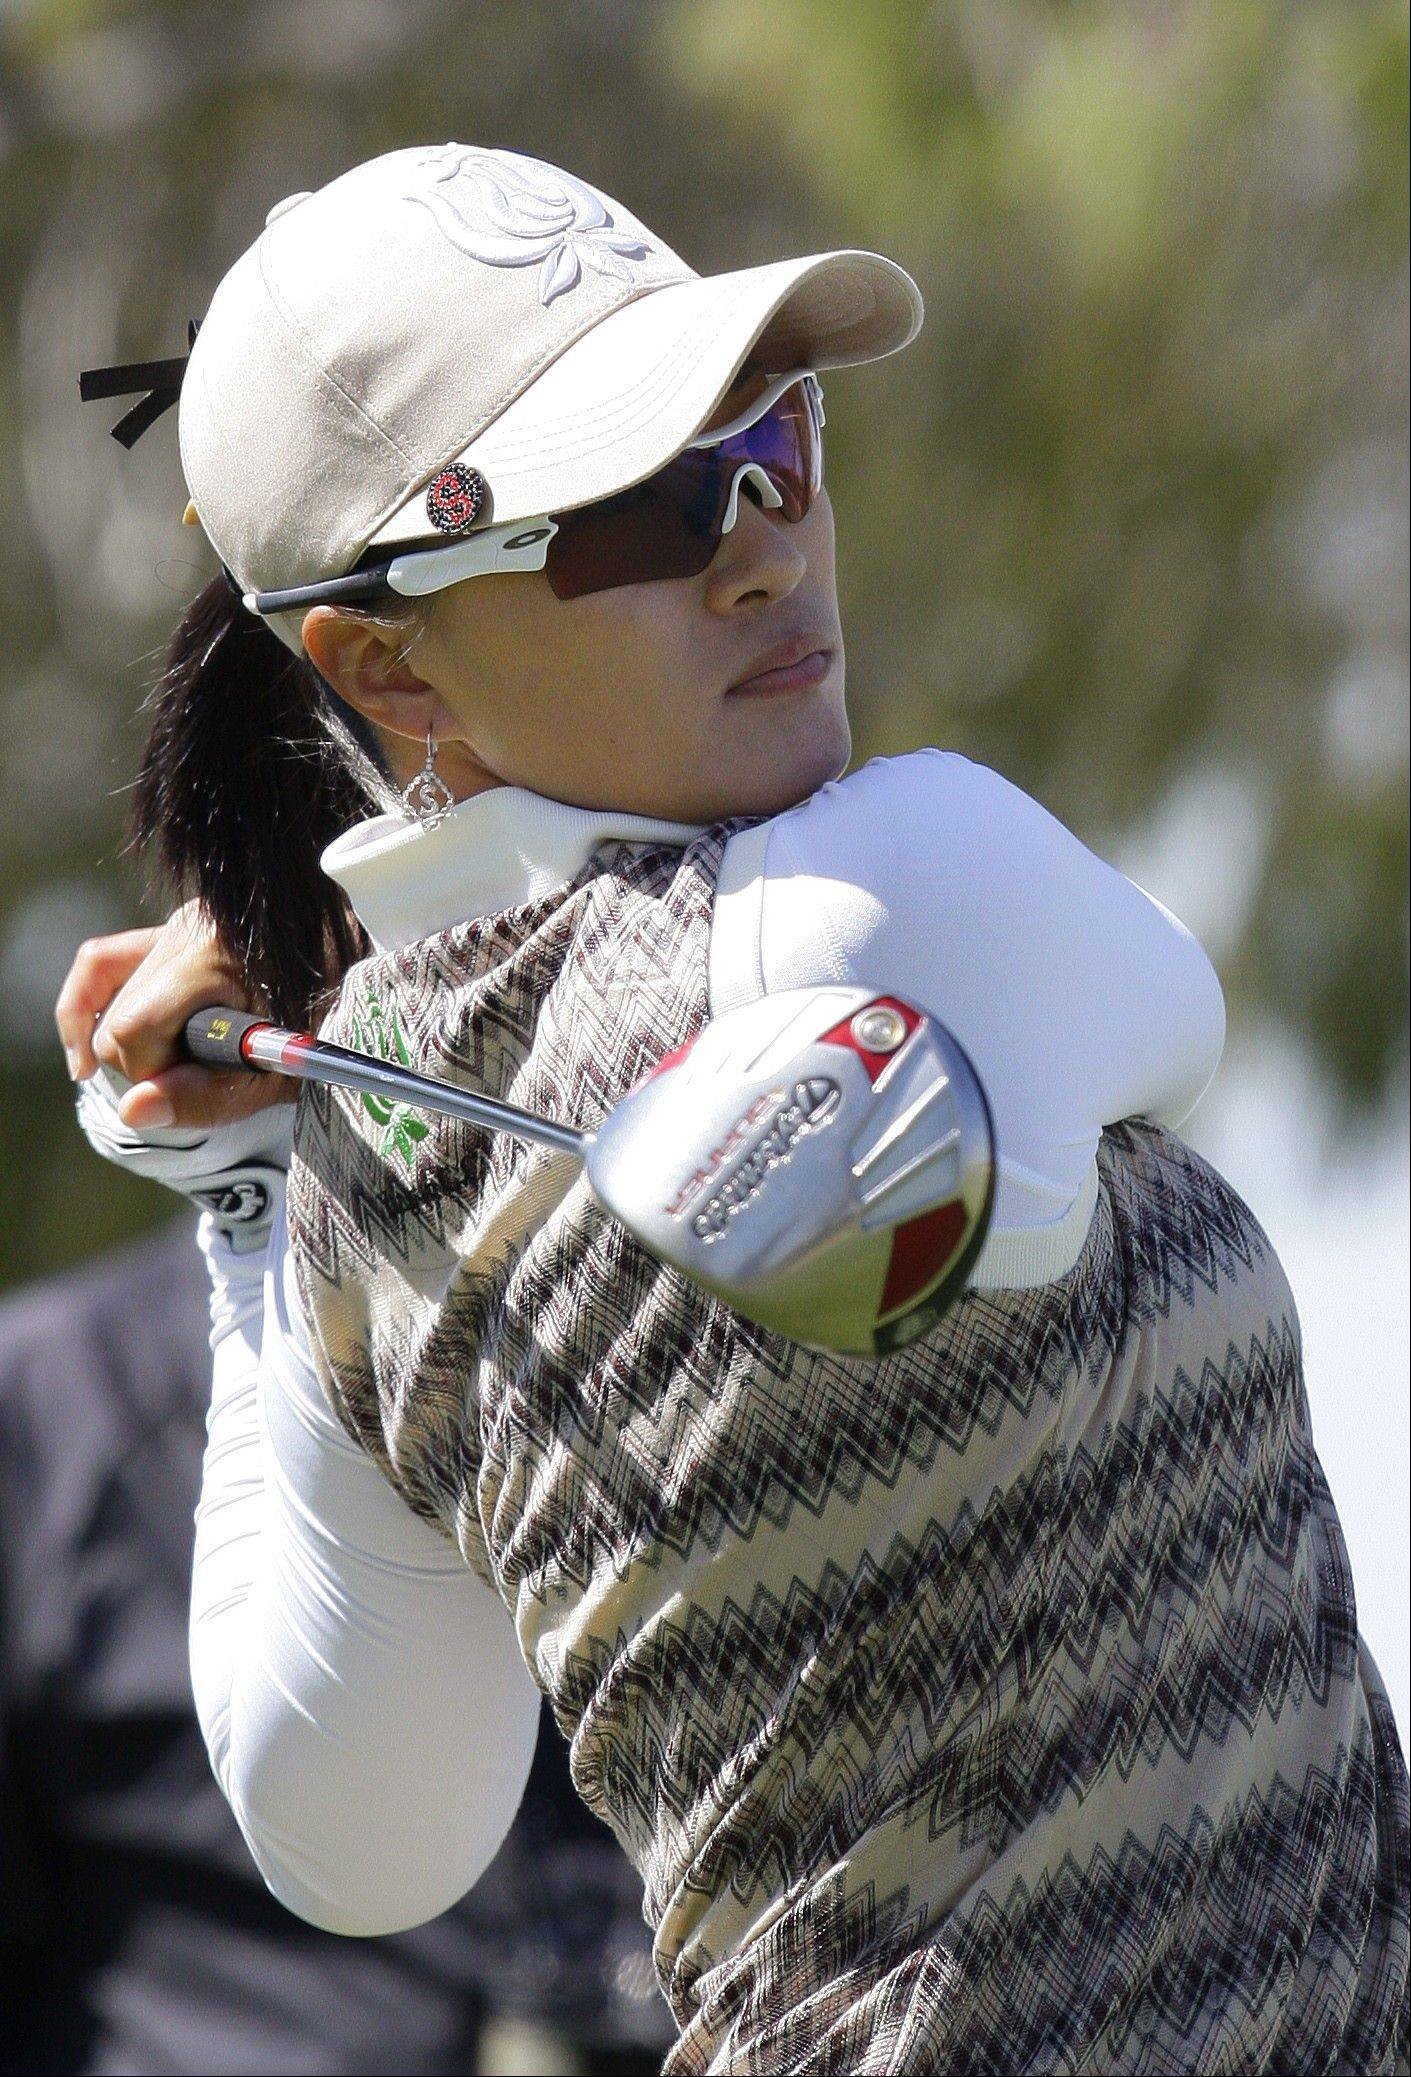 She's not expect to win this week's U.S. Women's Open, but Se Ri Pak's win at Blackwolf Run in 1998 led to an international wave of growth for the LPGA Tour. This week there are 28 Korean players in the field at the Kohler, Wis., course, and more than 40 compete on the tour.